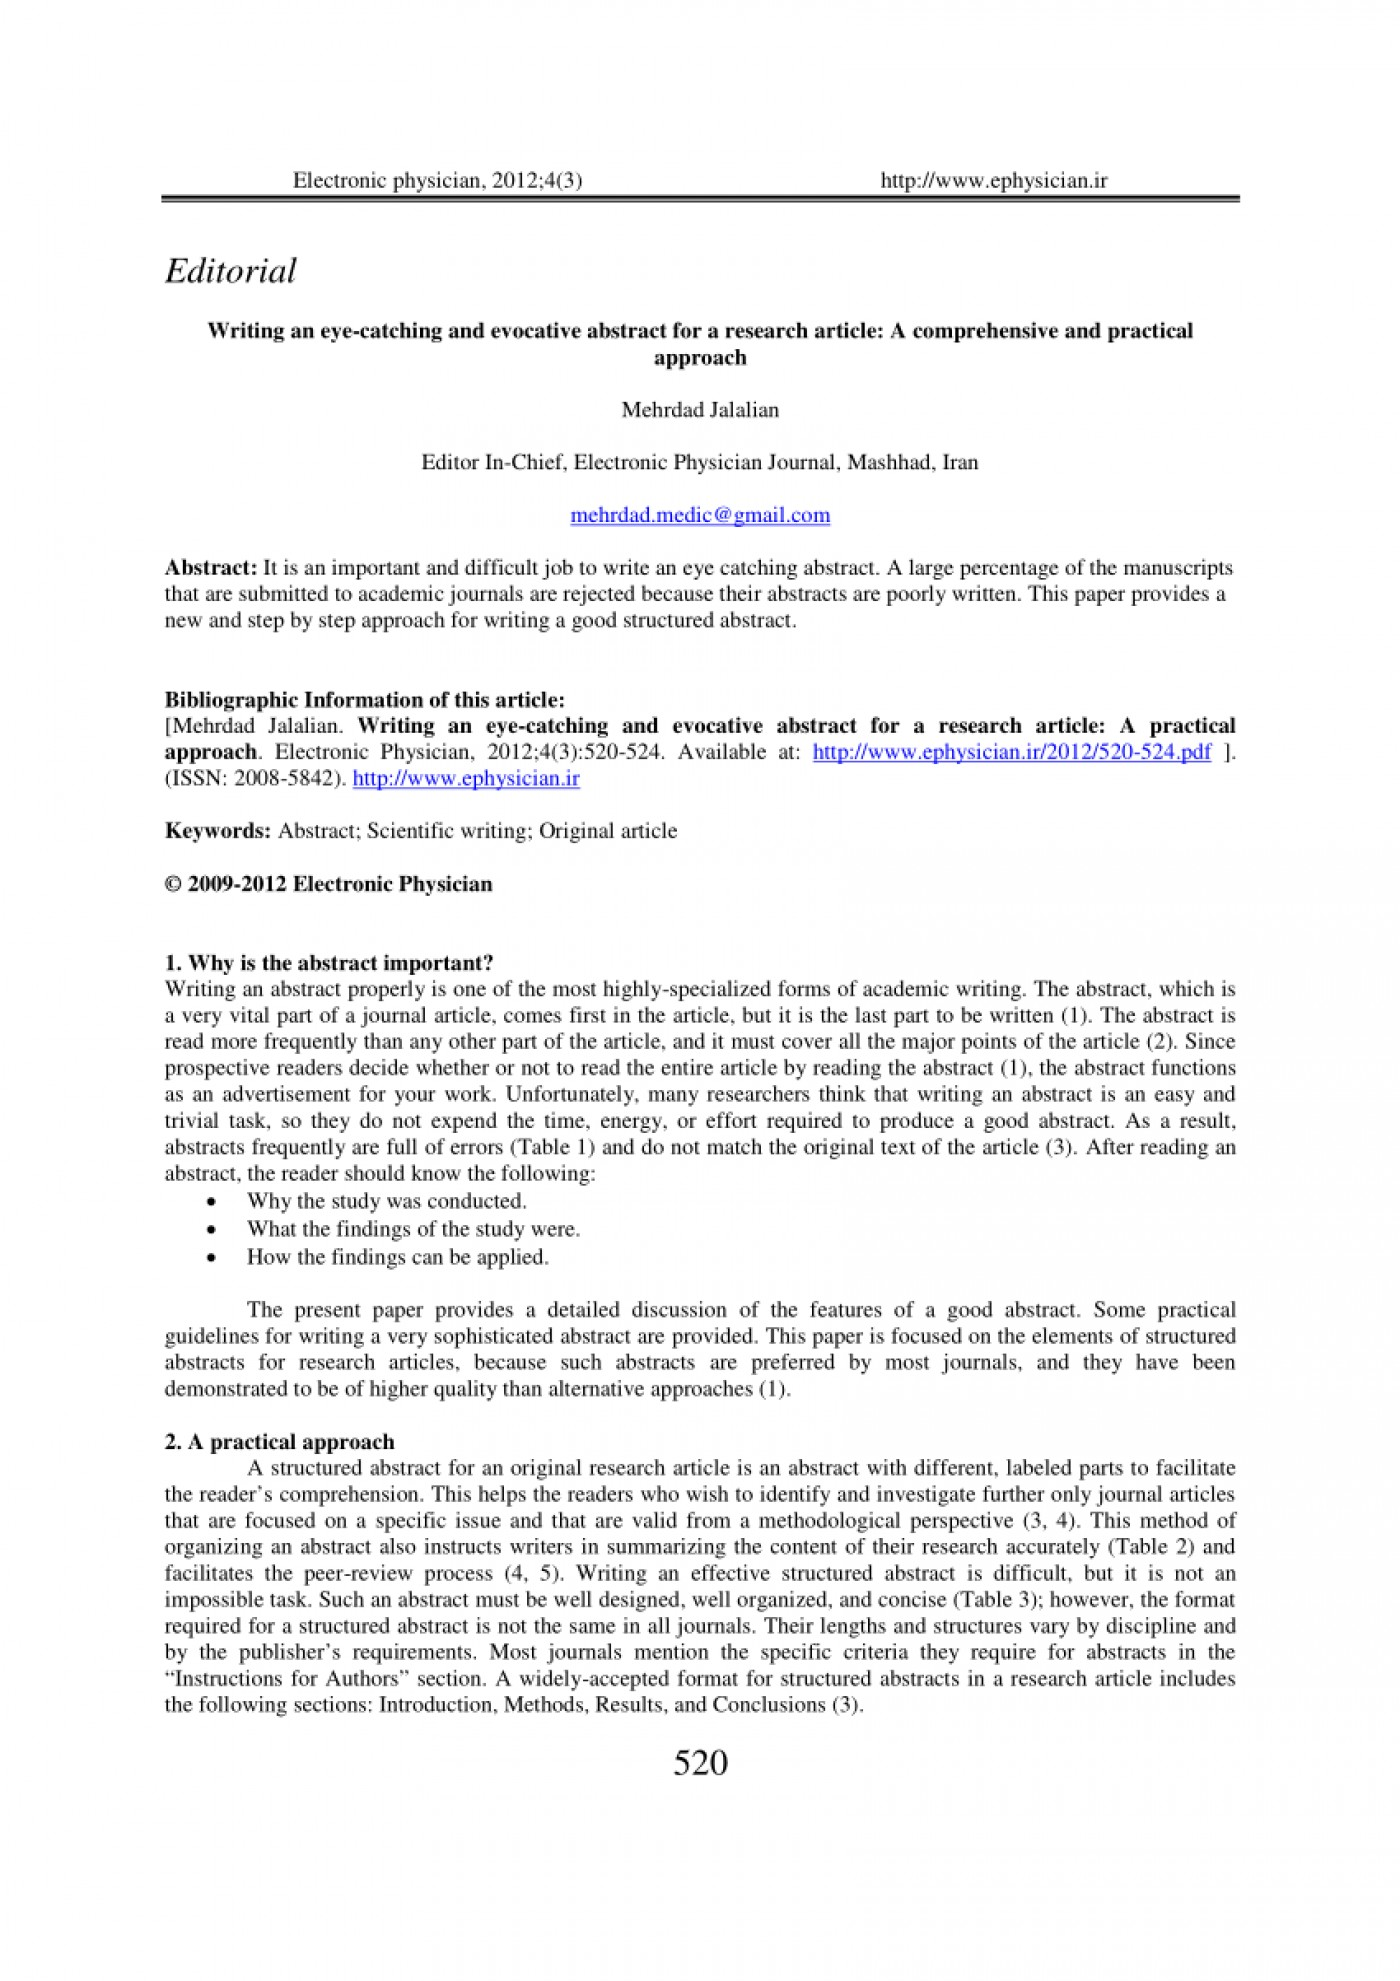 009 How To Write And Publish Scientific Research Paper Pdf Surprising A 1400